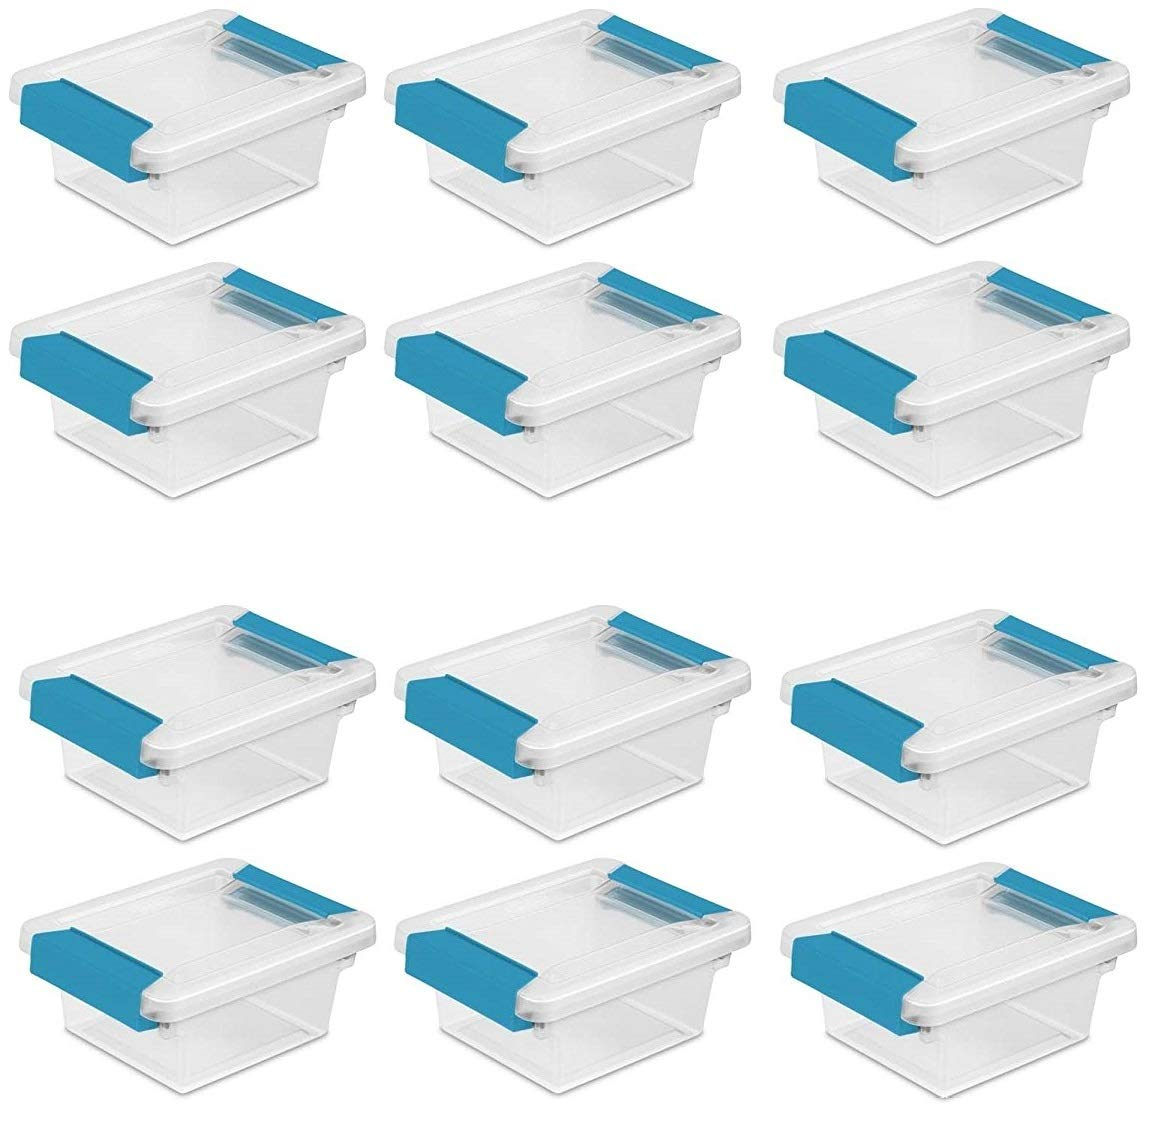 Sterilite 19698606 Mini Clip Box, Clear with Blue Aquarium Latches, 12-Pack